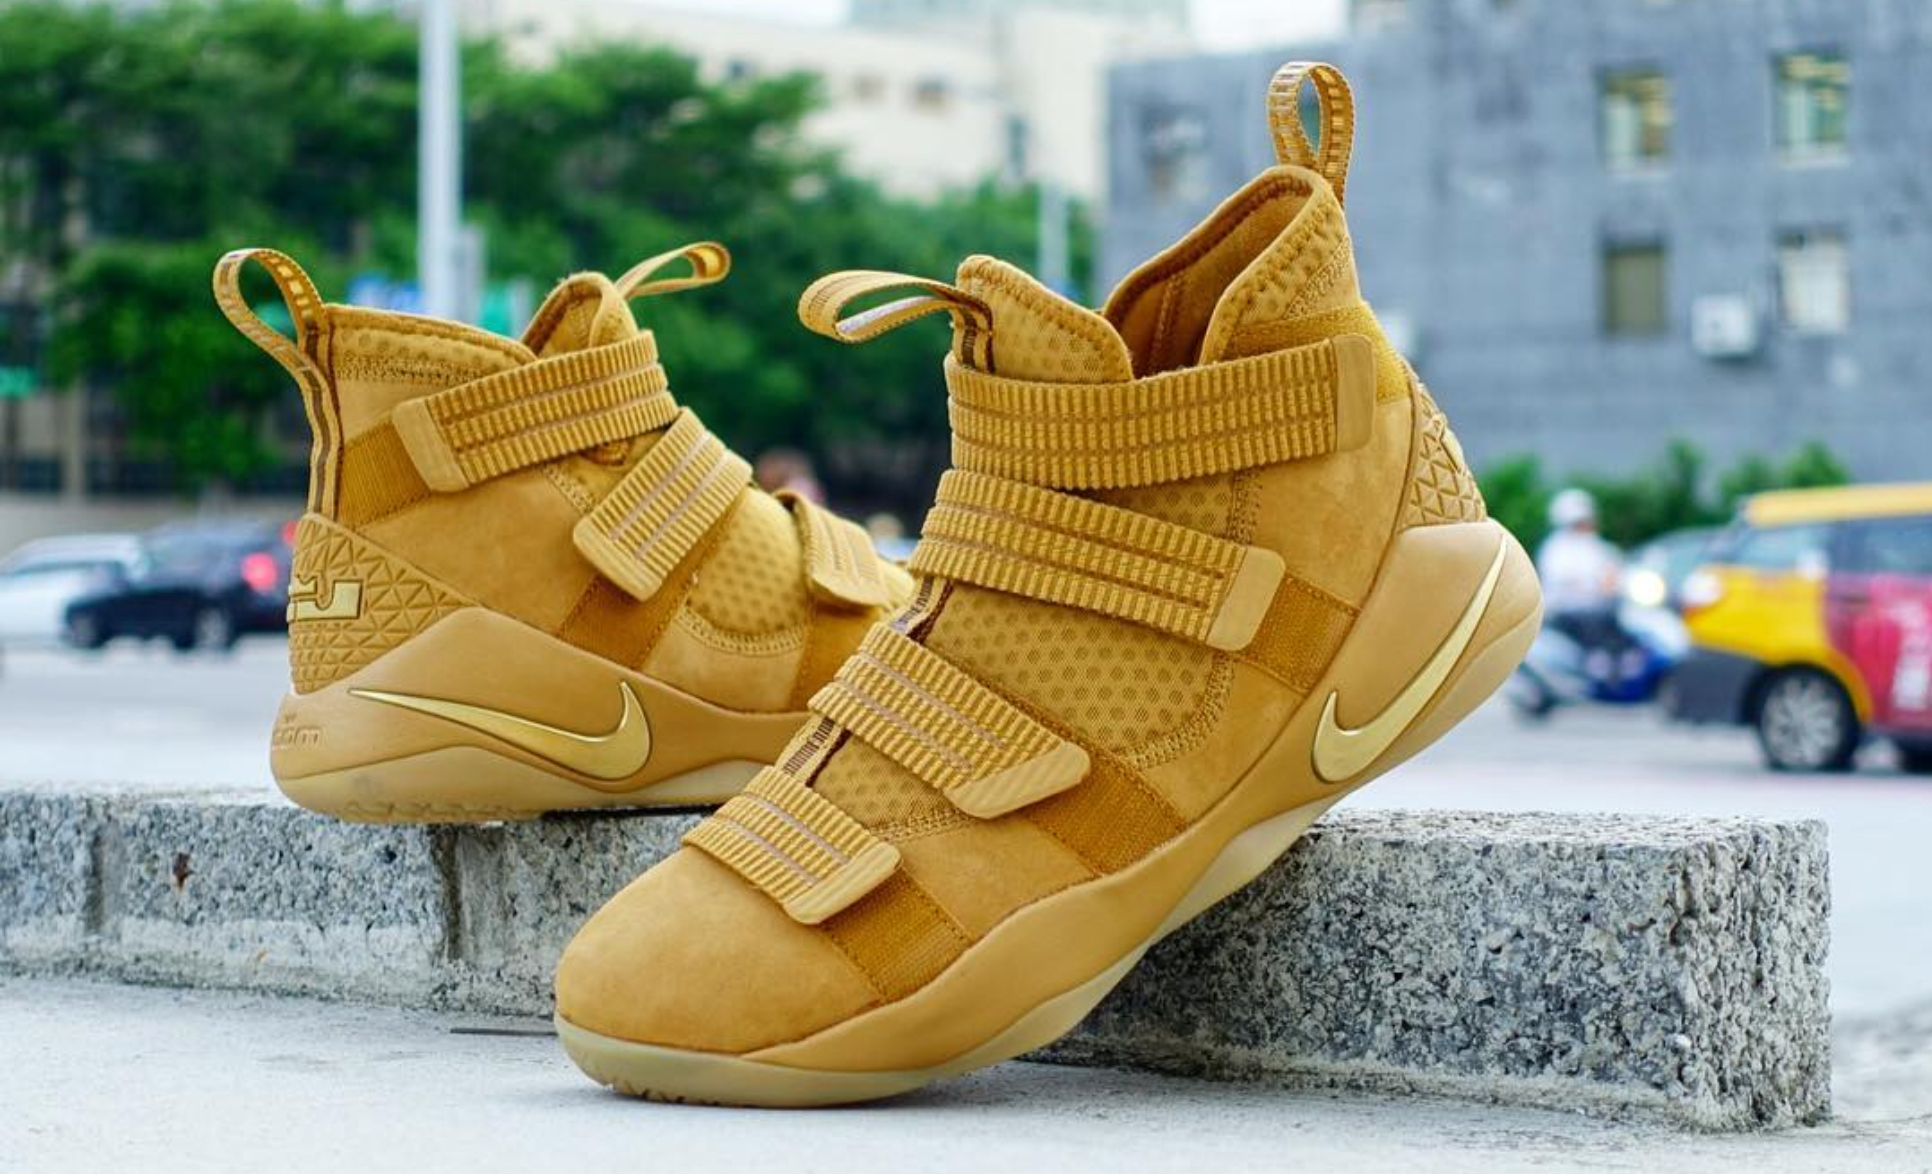 best service 6083e 422b8 There is a Wheat Nike LeBron Soldier 11 SFG Coming - WearTesters